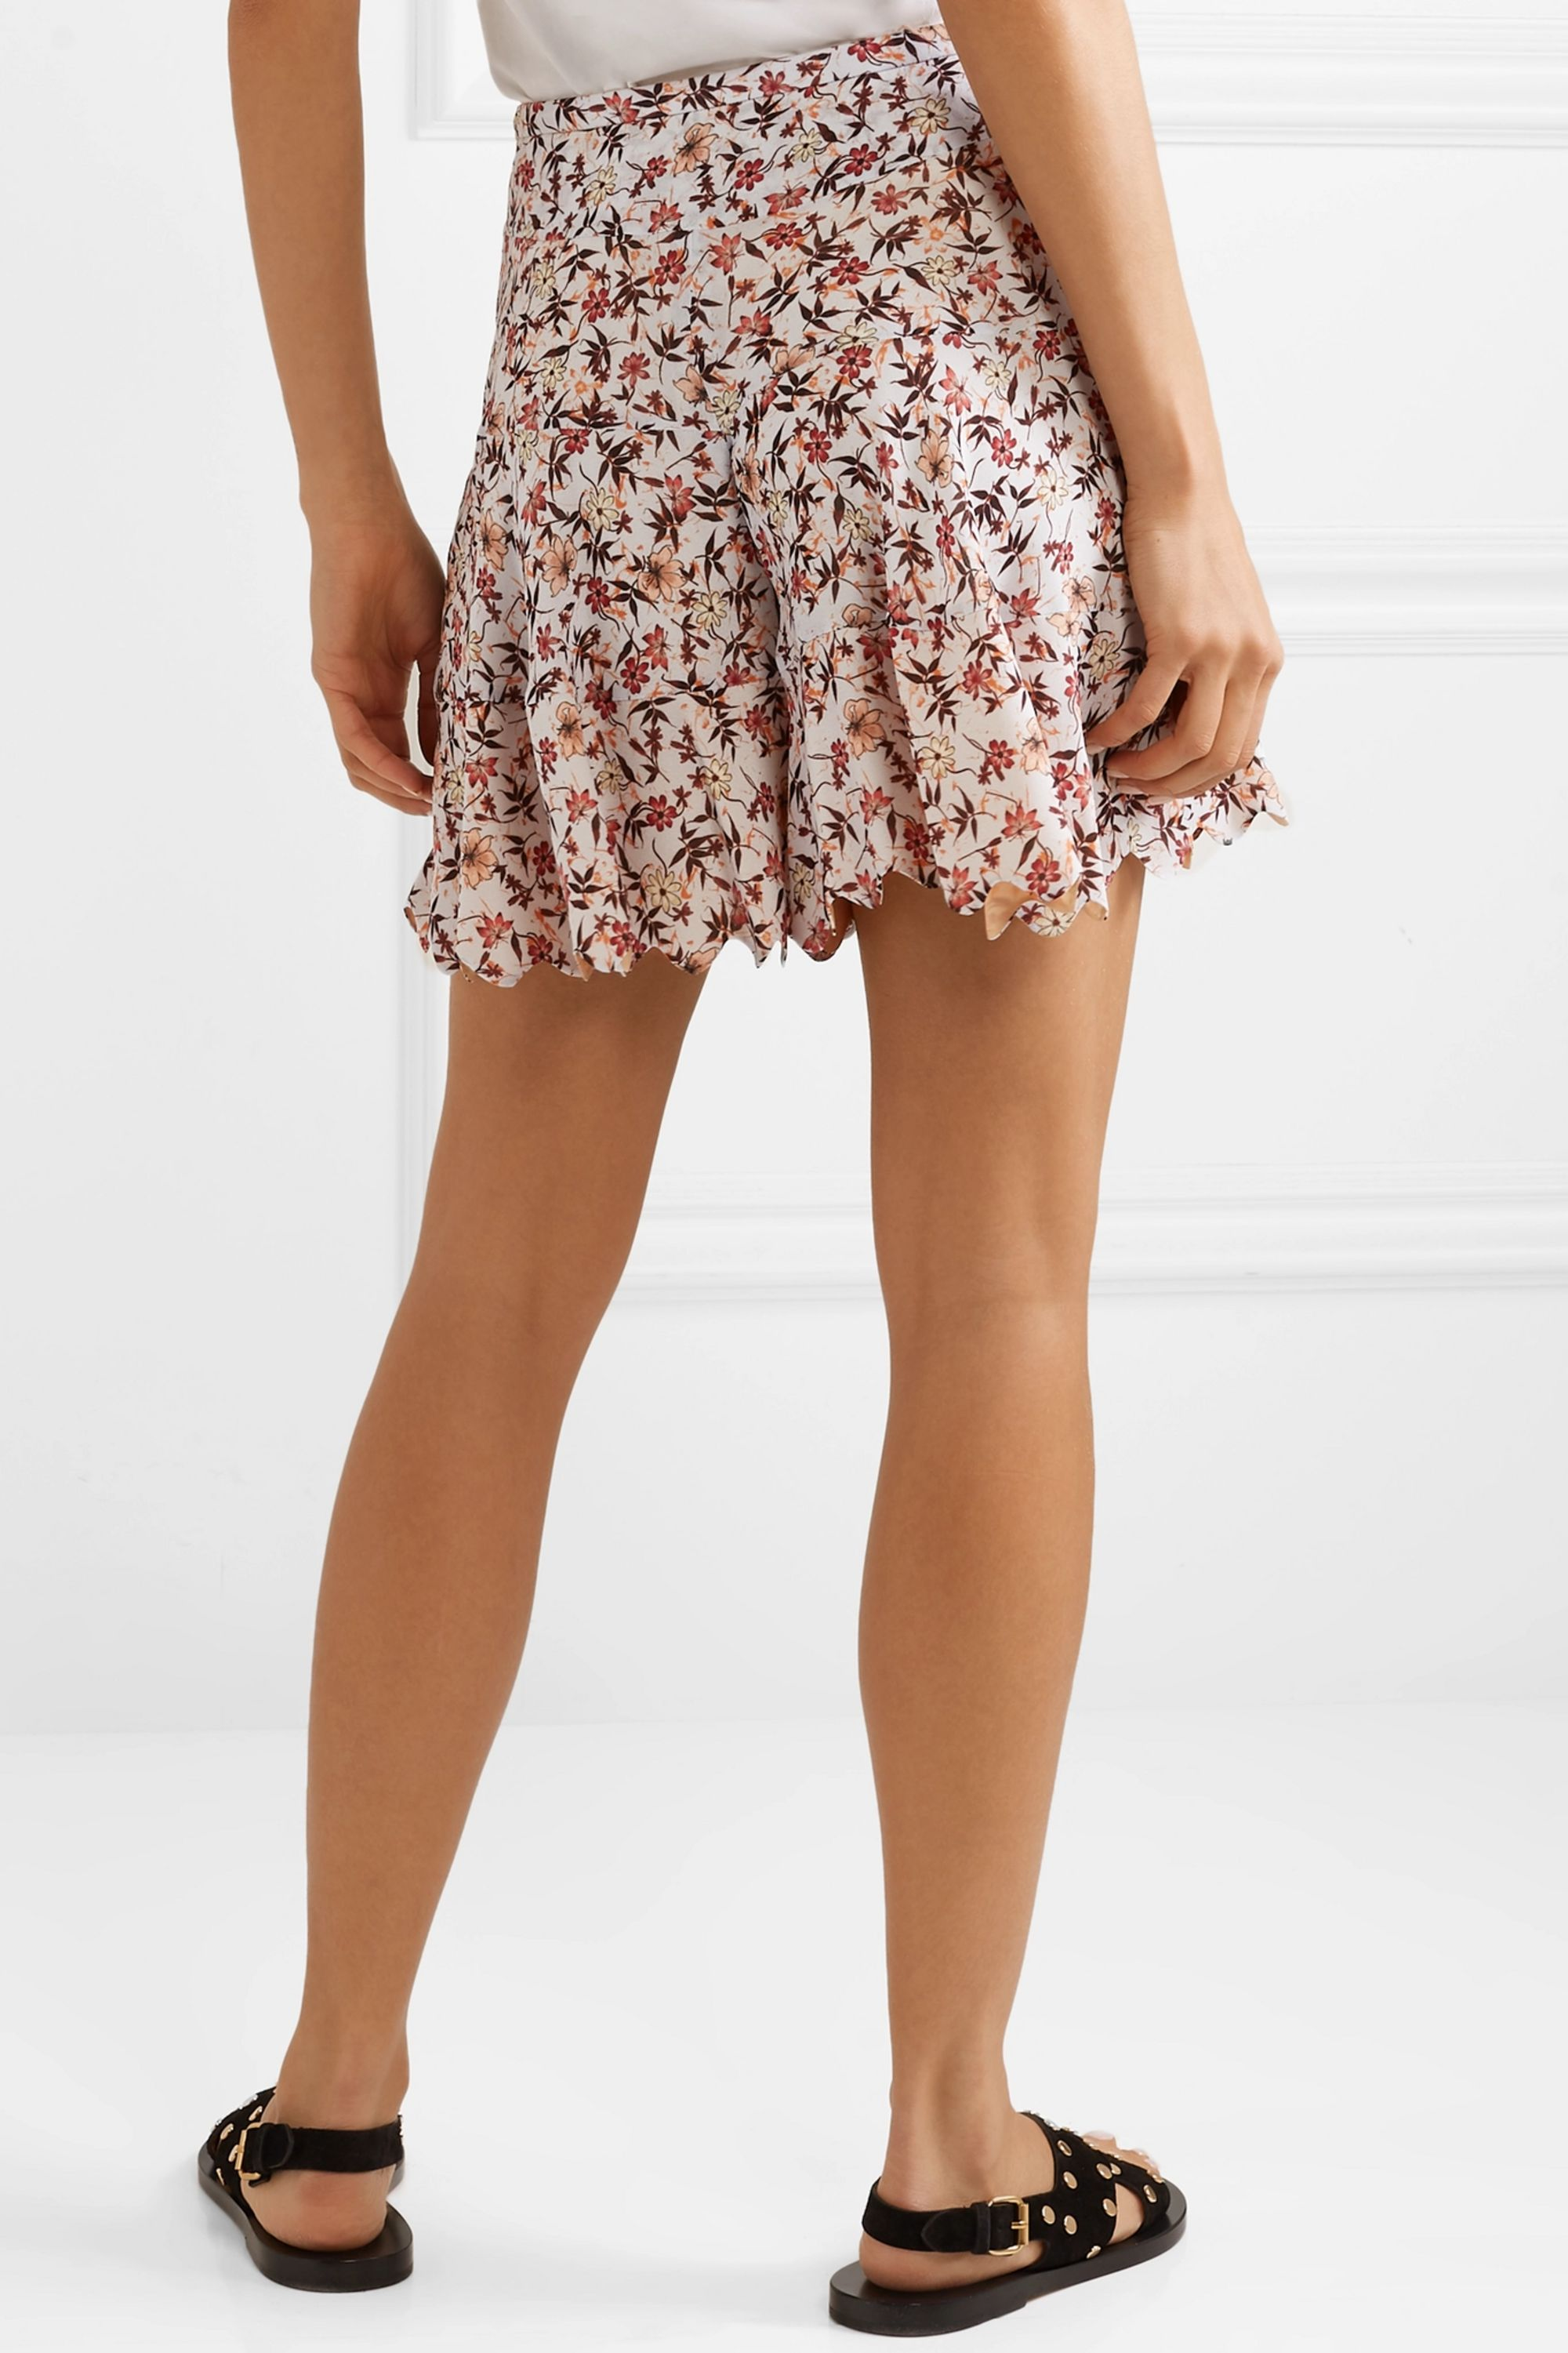 Chloé Scalloped floral-print georgette shorts